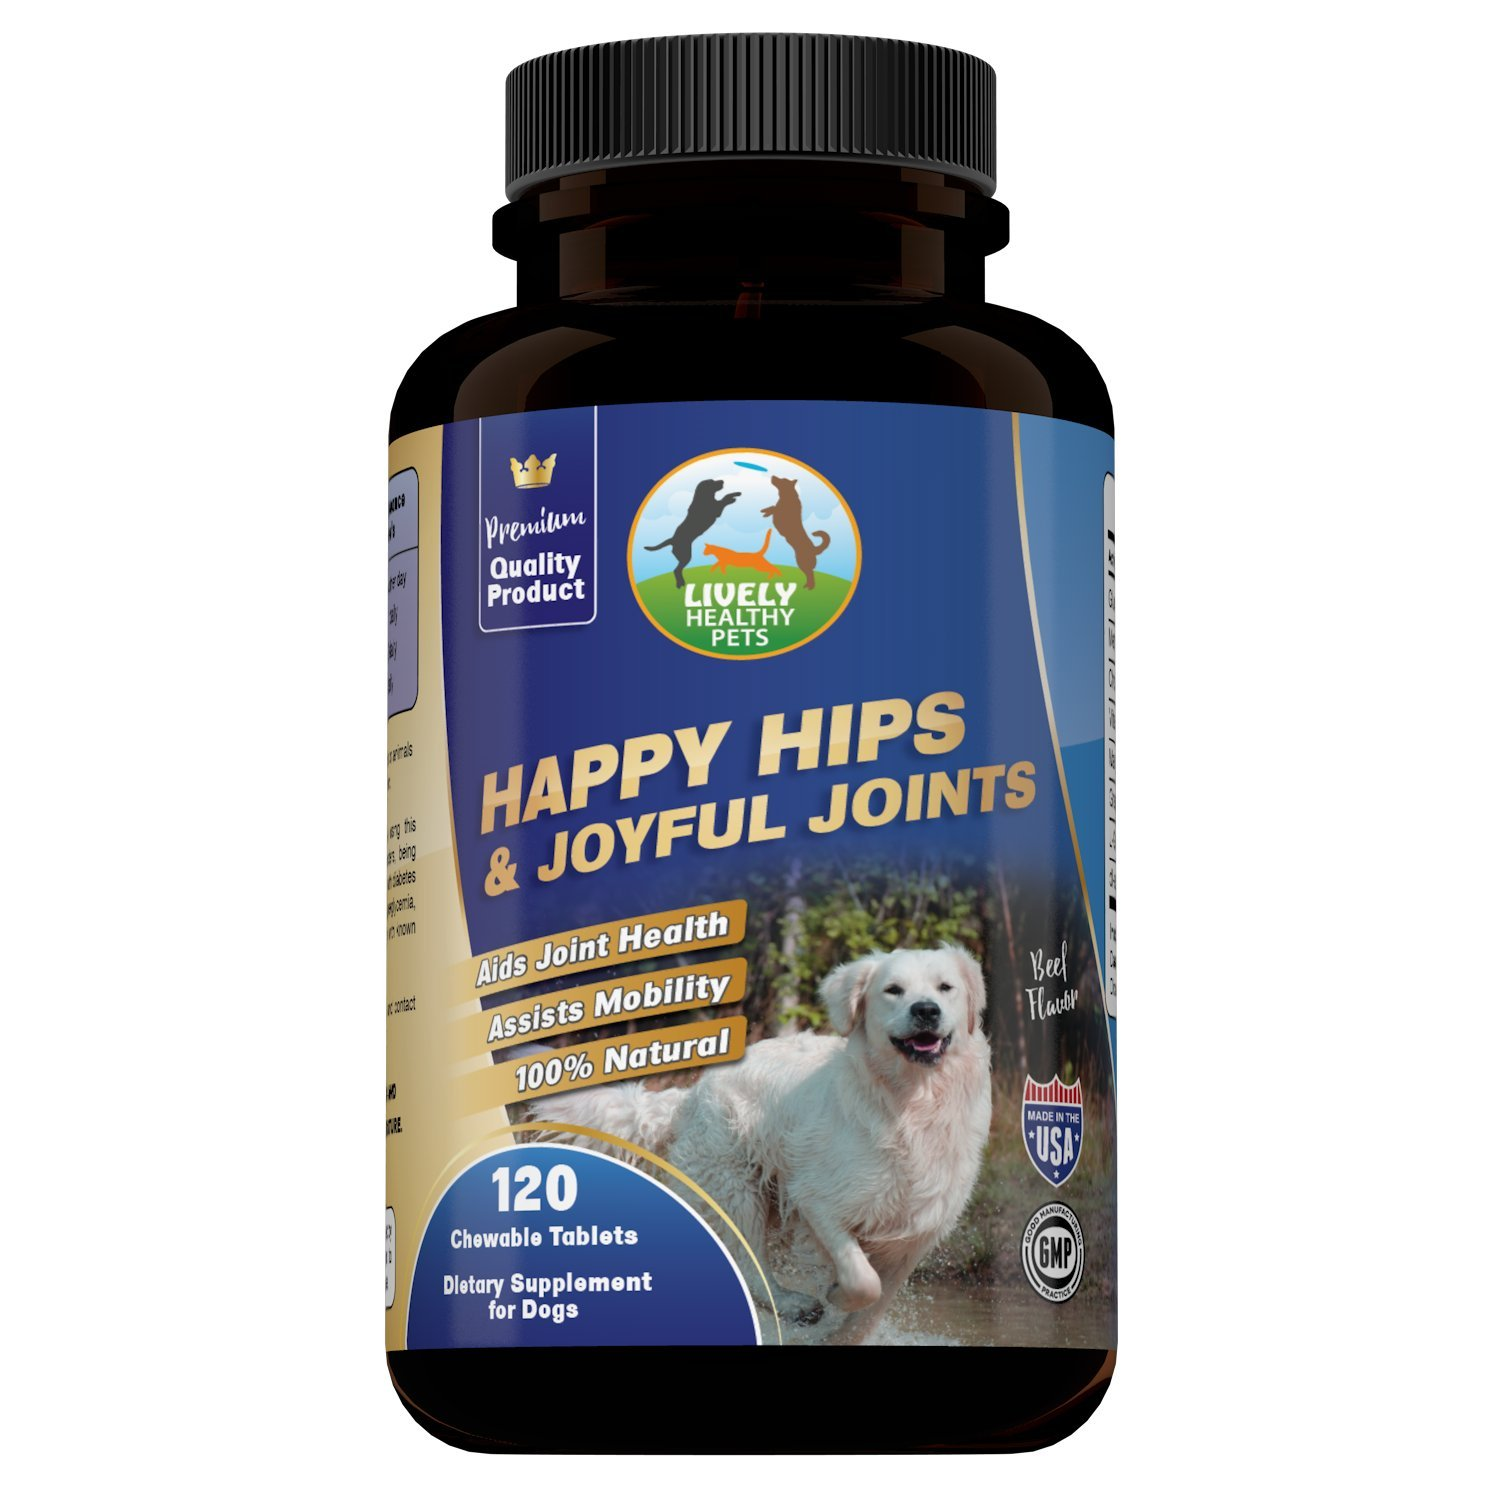 Glucosamine for Dogs, Hip and Joint Supplement by Lively Healthy Pets, Chondroitin, MSM, and L-Glutathione, for Optimal Joint Health and Pain Relief Caused by Arthritis, Premium Beef Flavored Treat